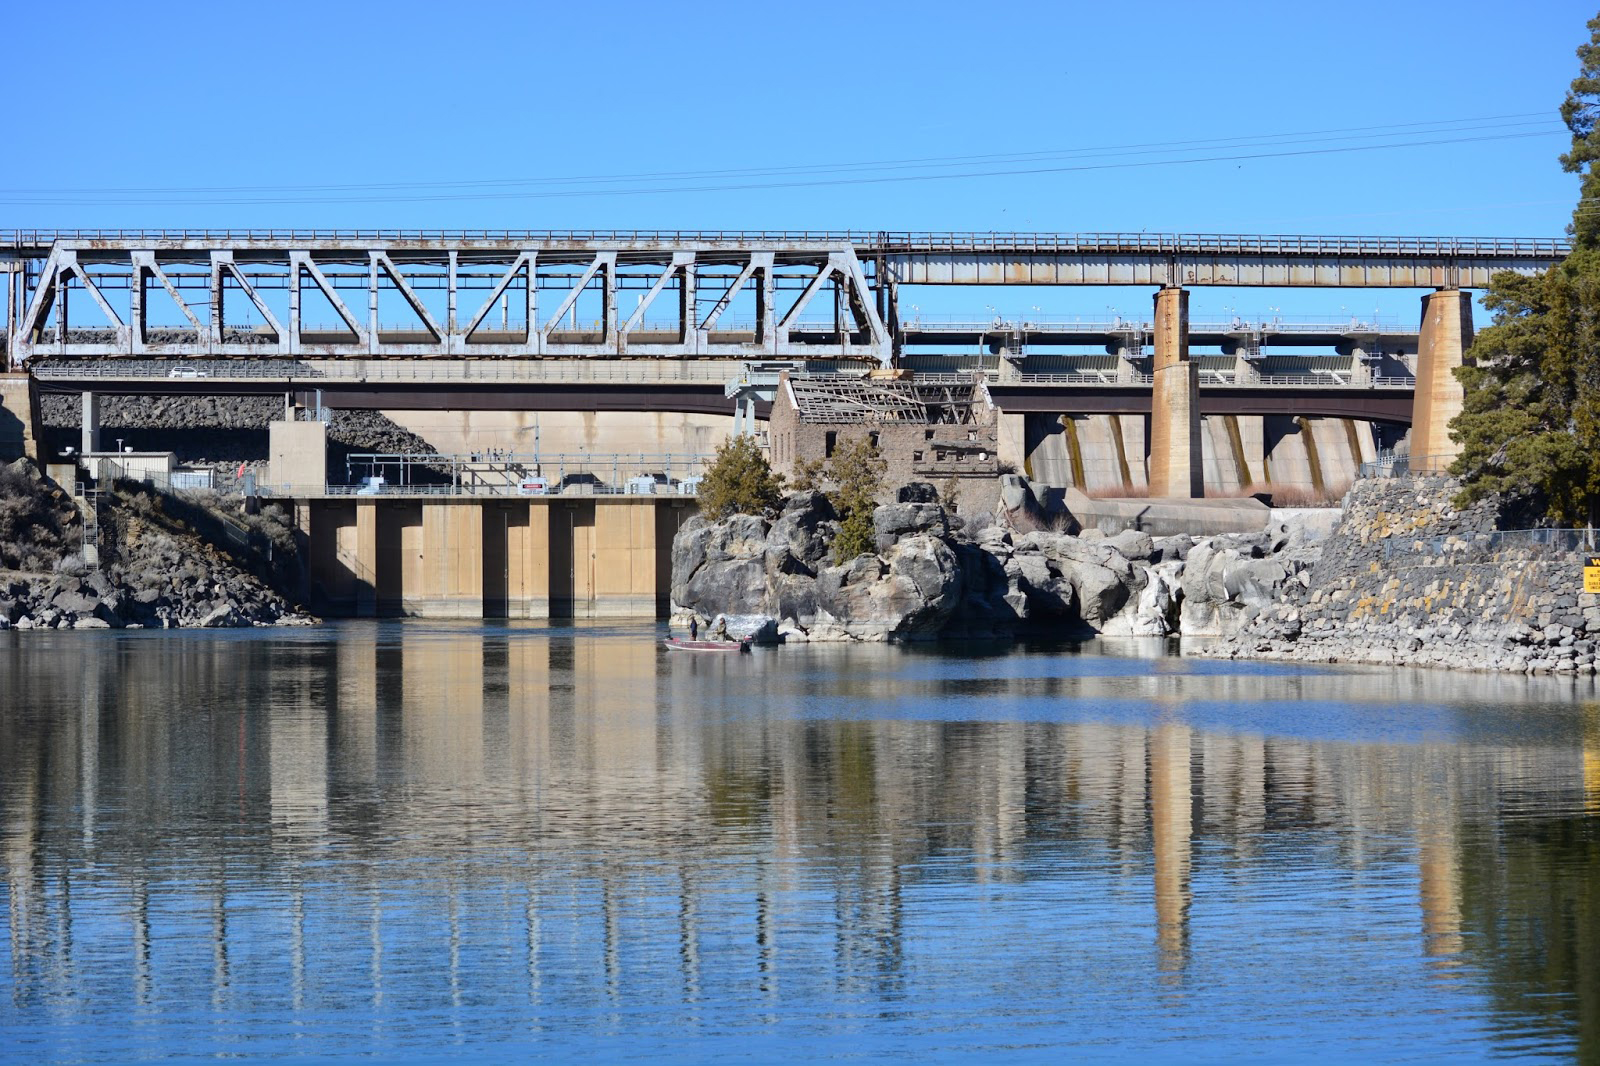 American Falls Dam, Power County, Idaho, viewed from downstream with spillway visible at right below the railroad bridge